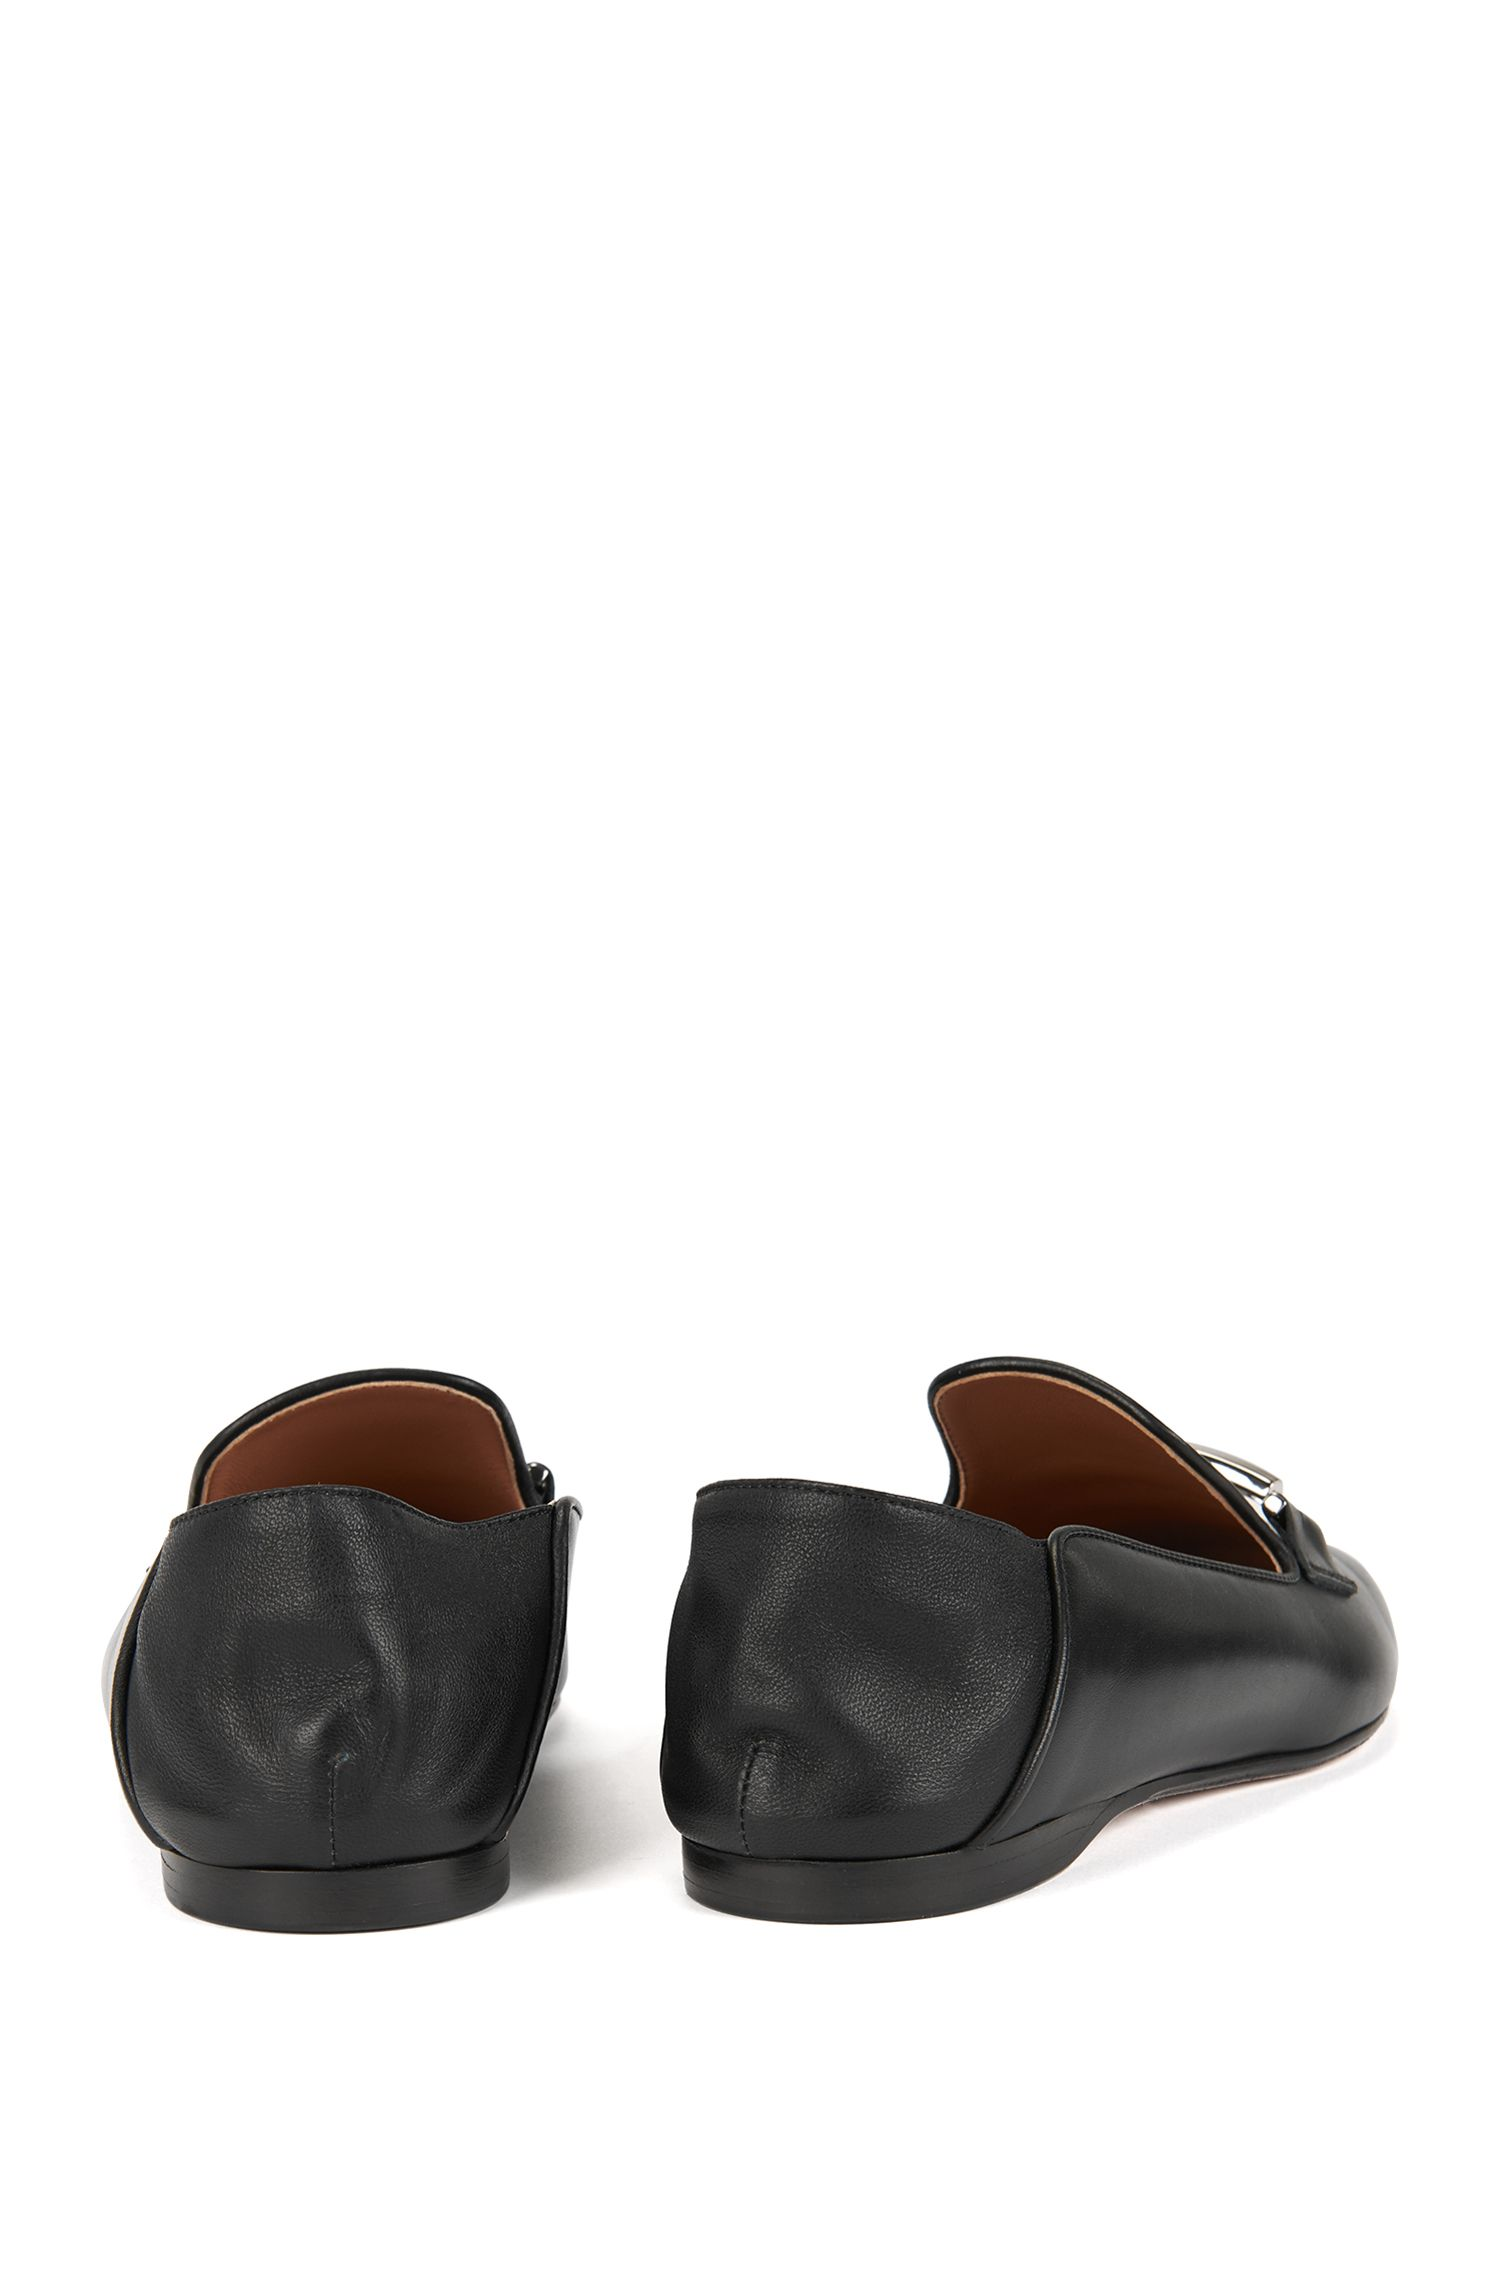 Leather loafers with fold-down heel counters BOSS